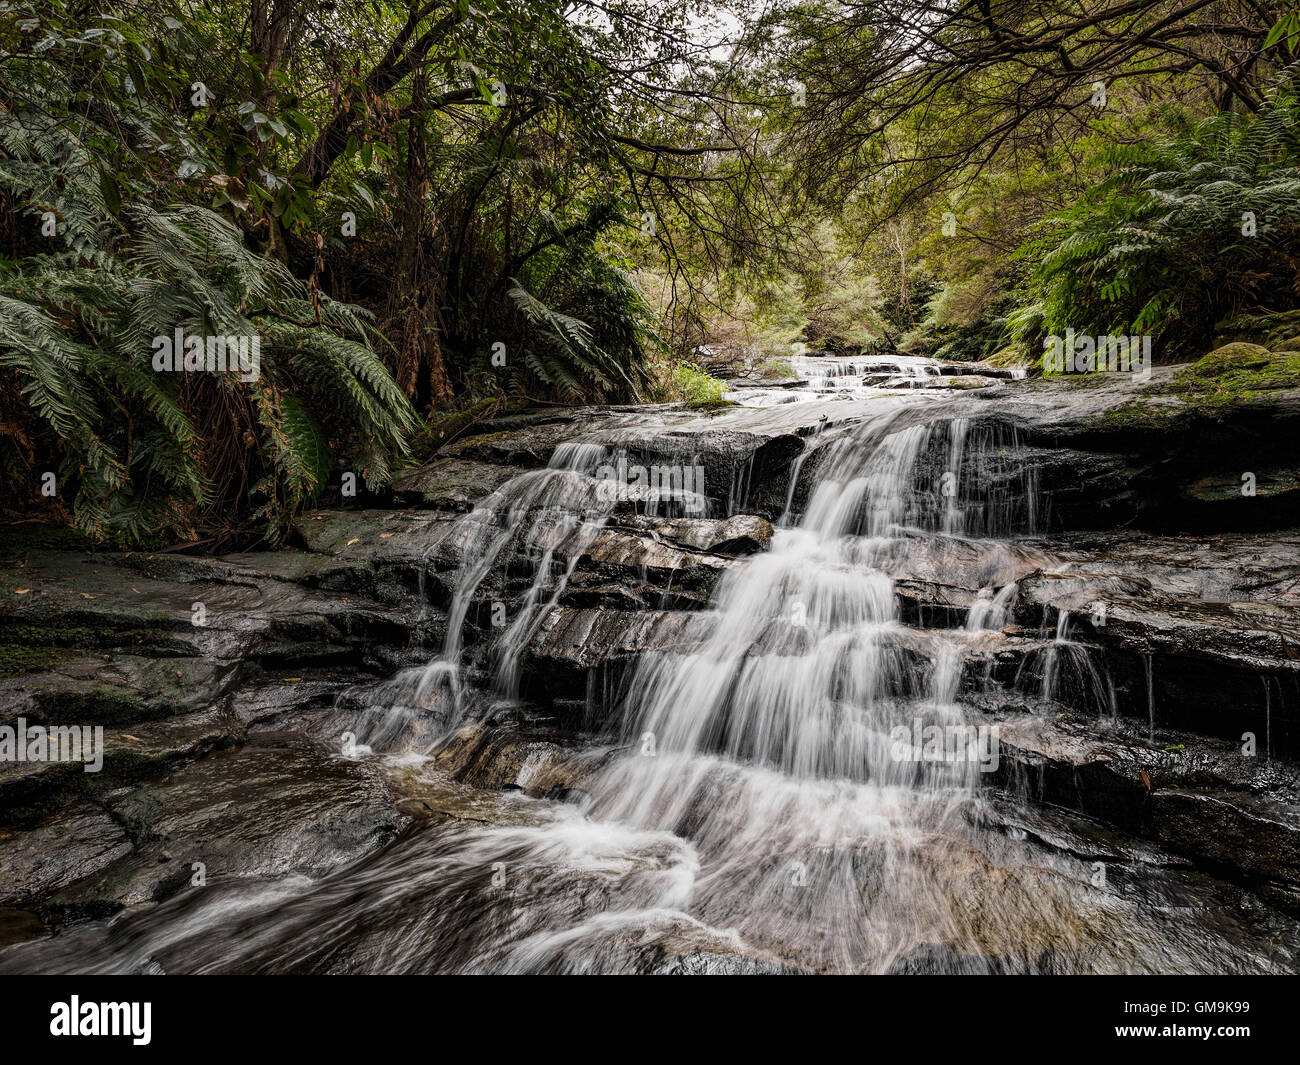 Australia, New South Wales, Blue Mountains National Park, Leura Cascades, Waterfall in forest - Stock Image